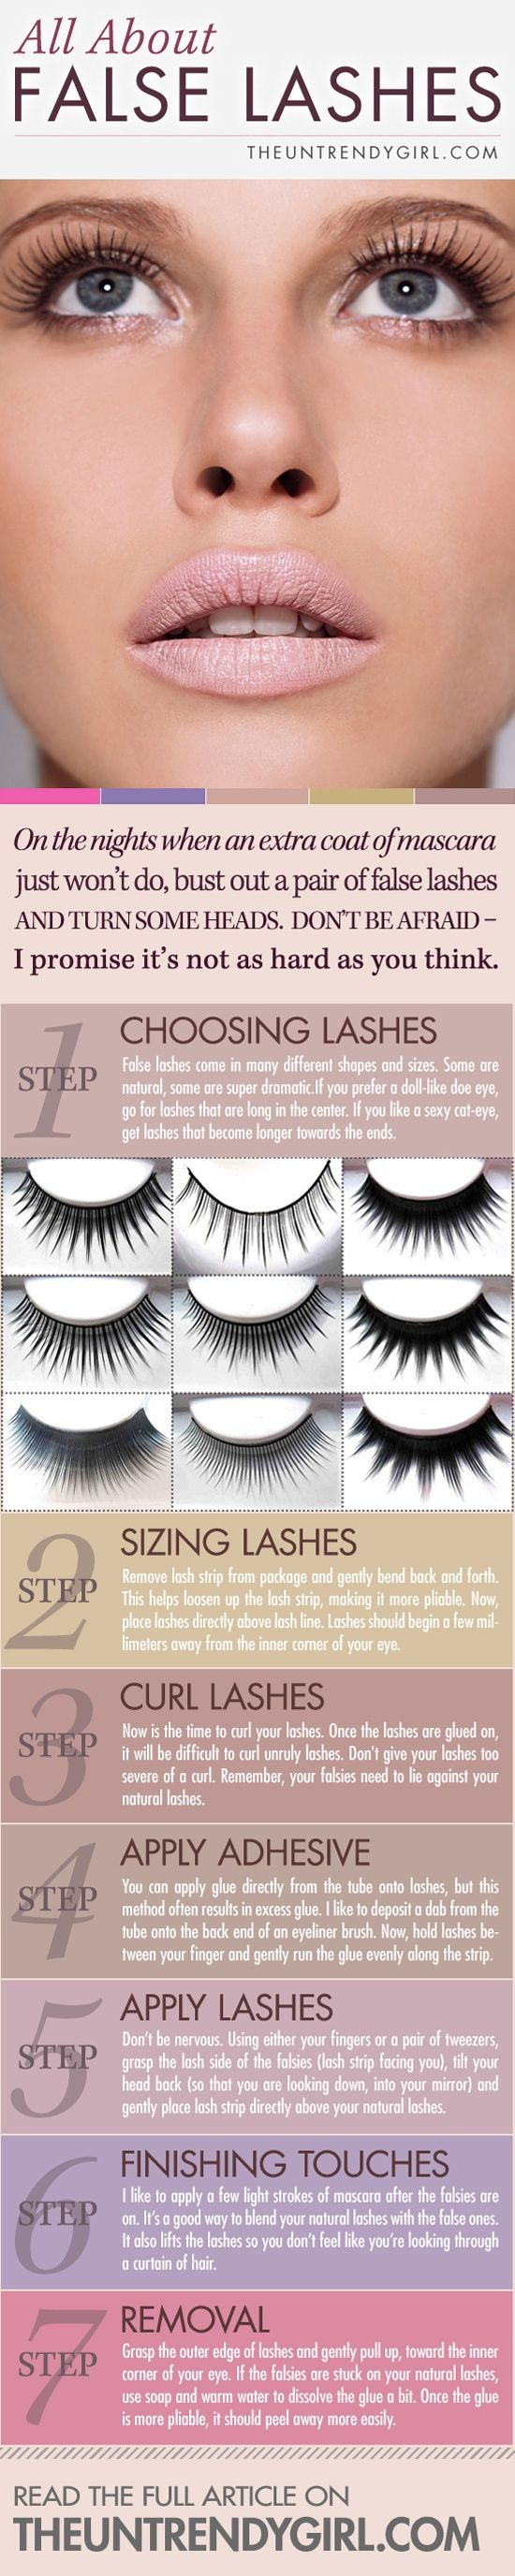 15 Hacks, Tips and Tricks On How To Apply False Lashes Like a Pro